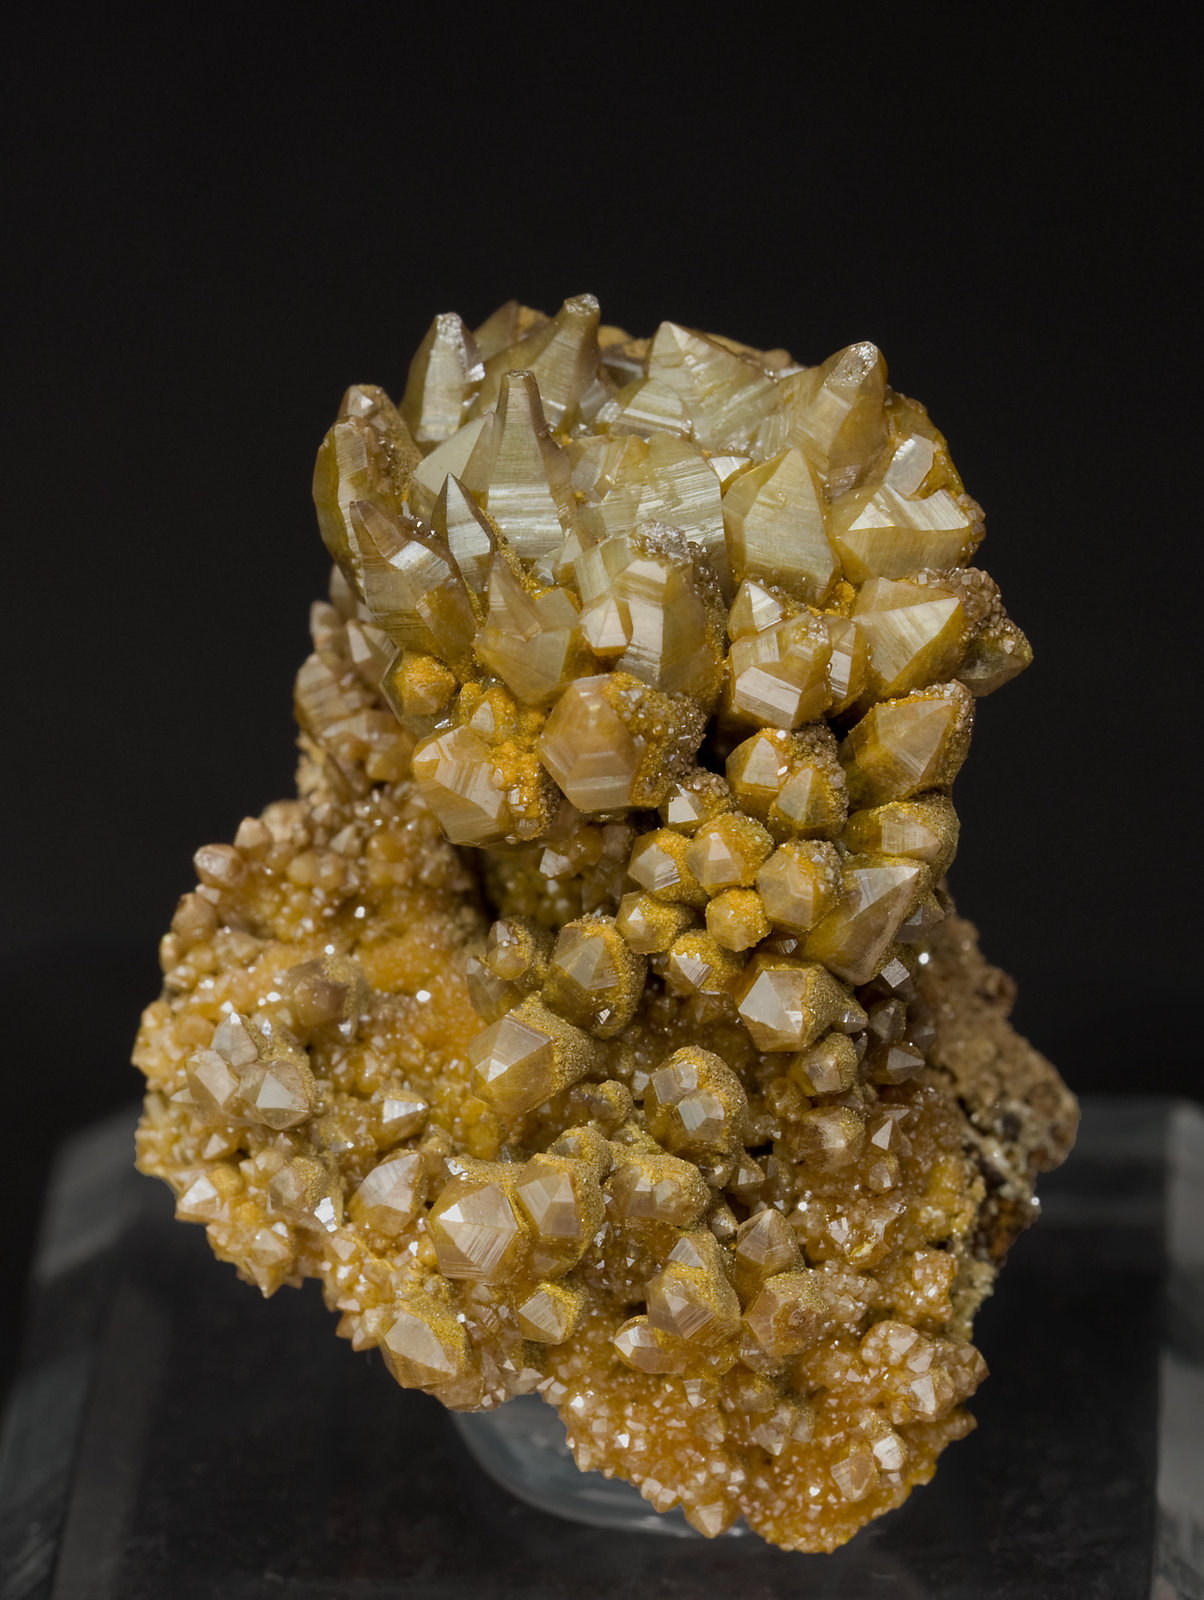 specimens/s_imagesV4/Vanadinite-TD14V4.jpg